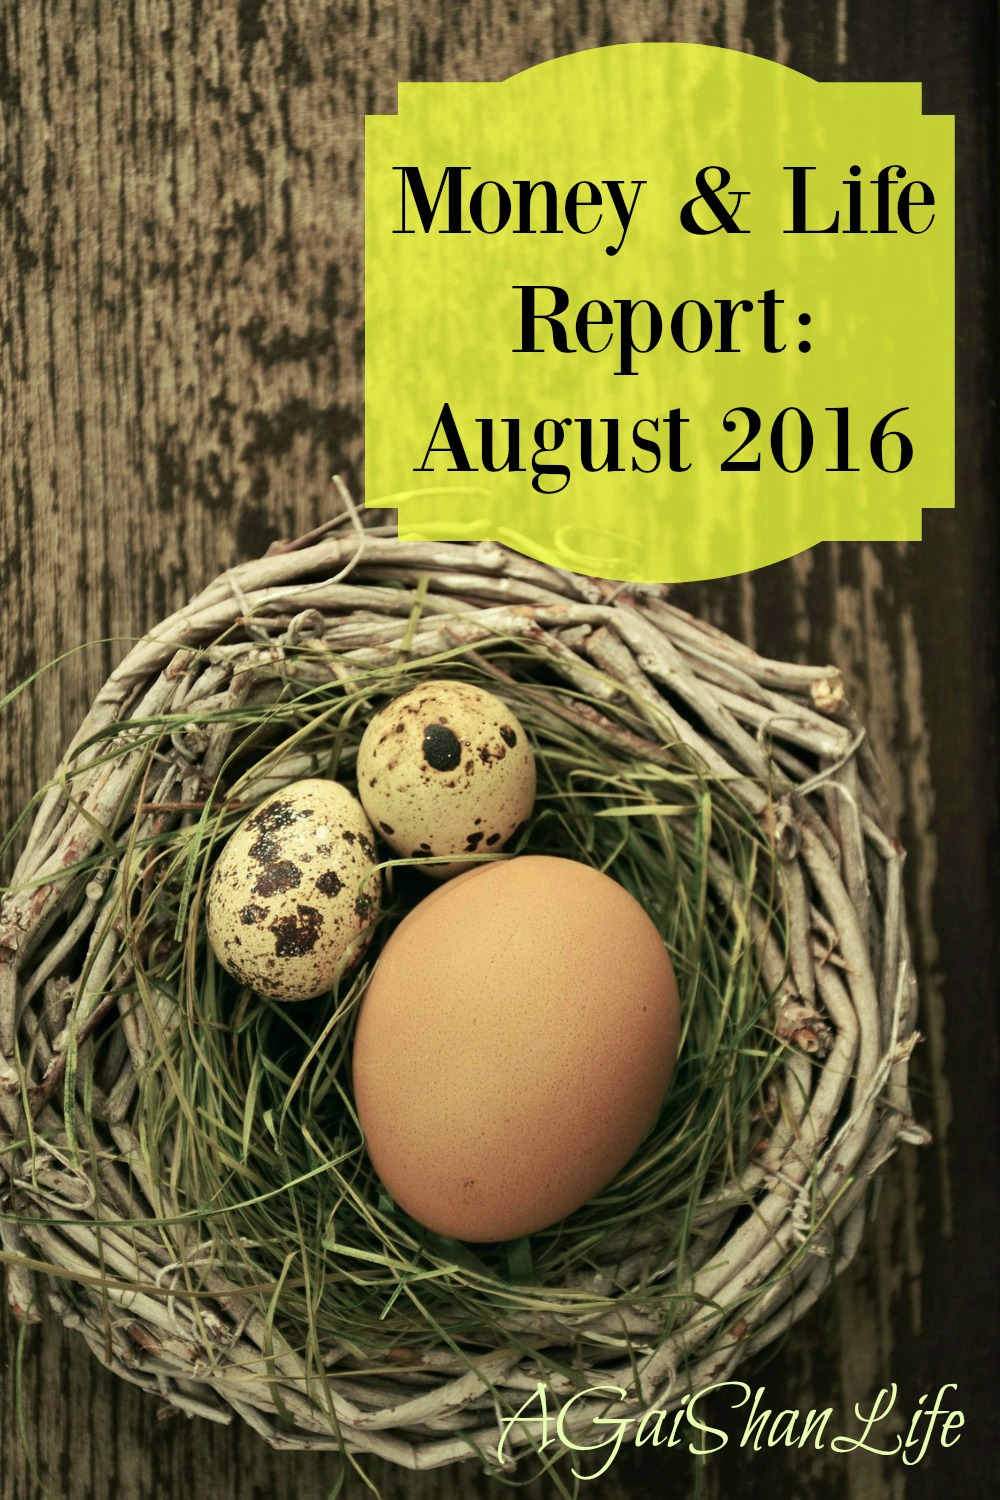 August 2016 Life and Life Report: